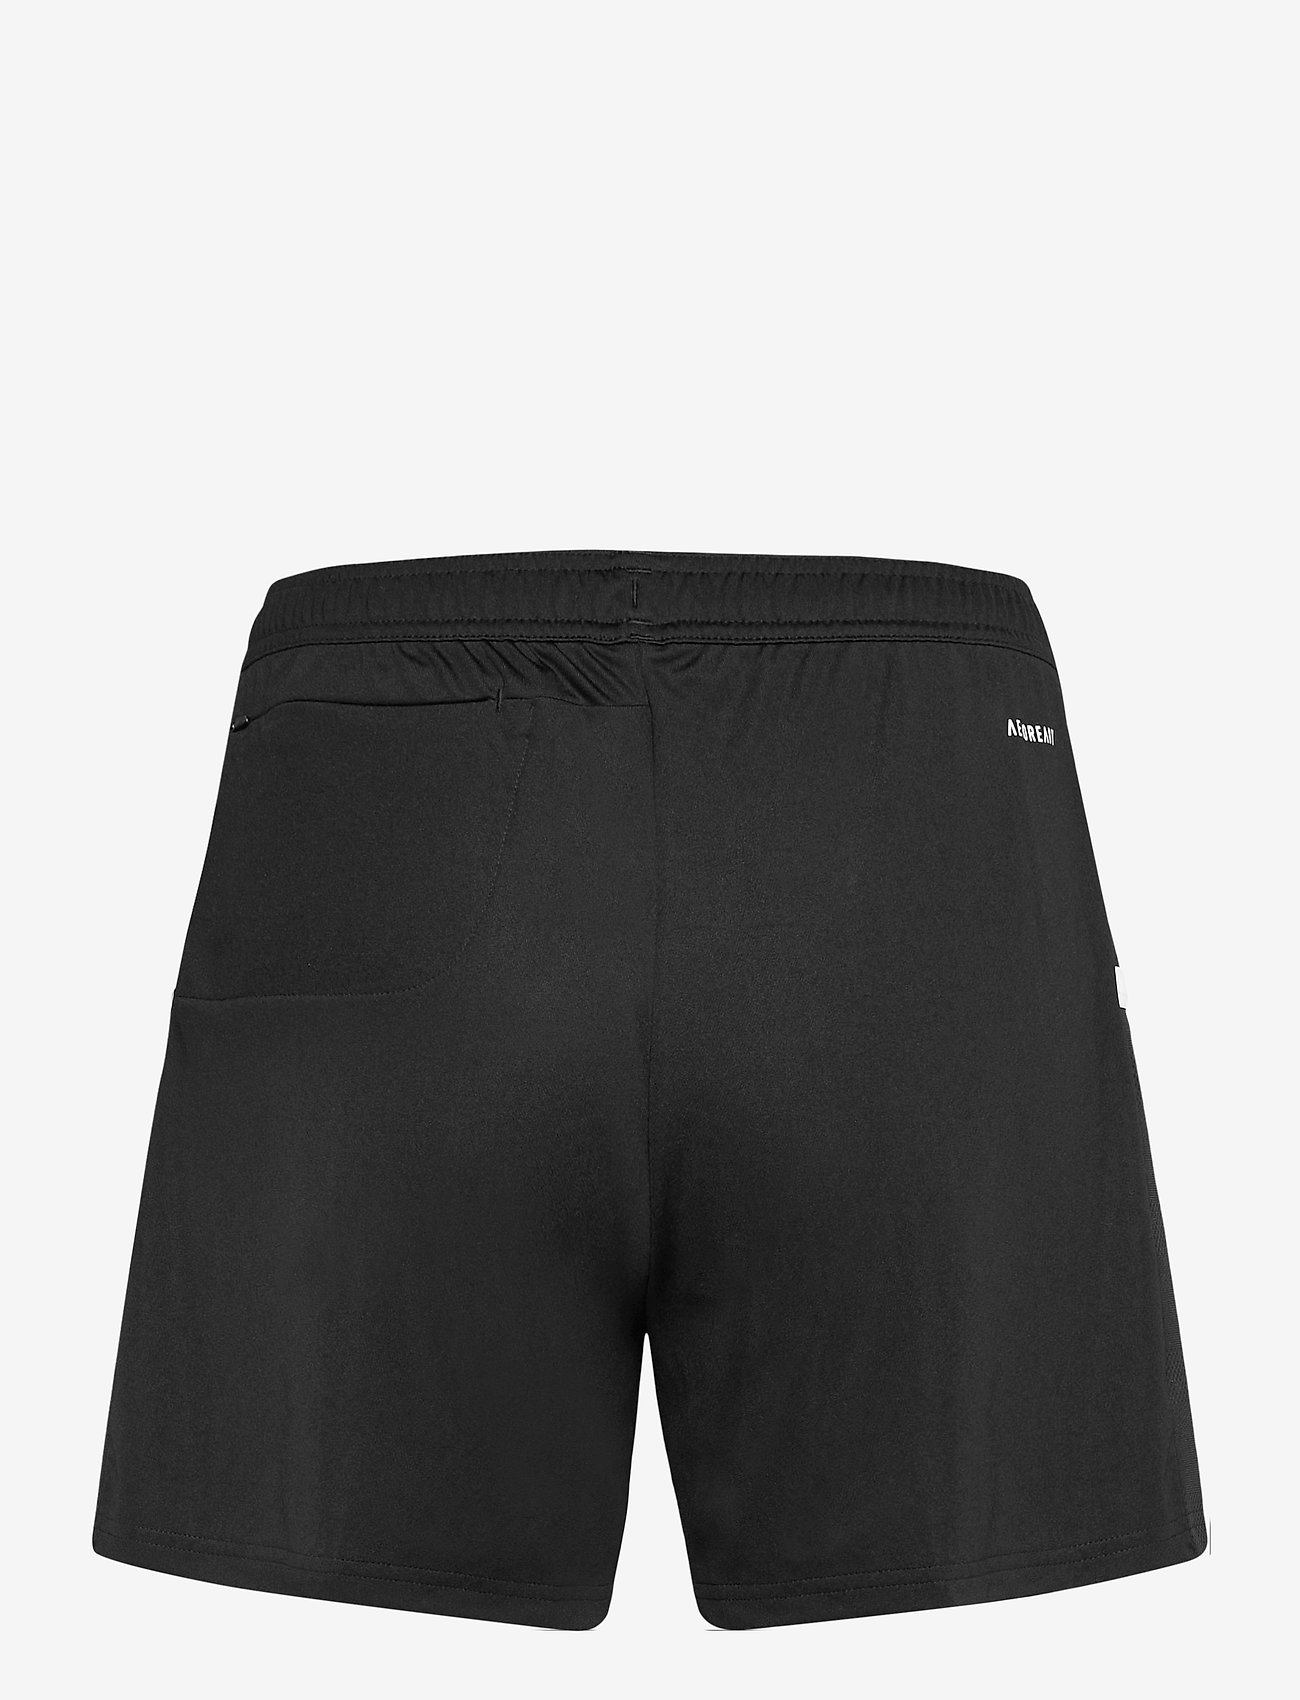 adidas Performance - Team 19 3-Pocket Shorts W - training korte broek - black/white - 1